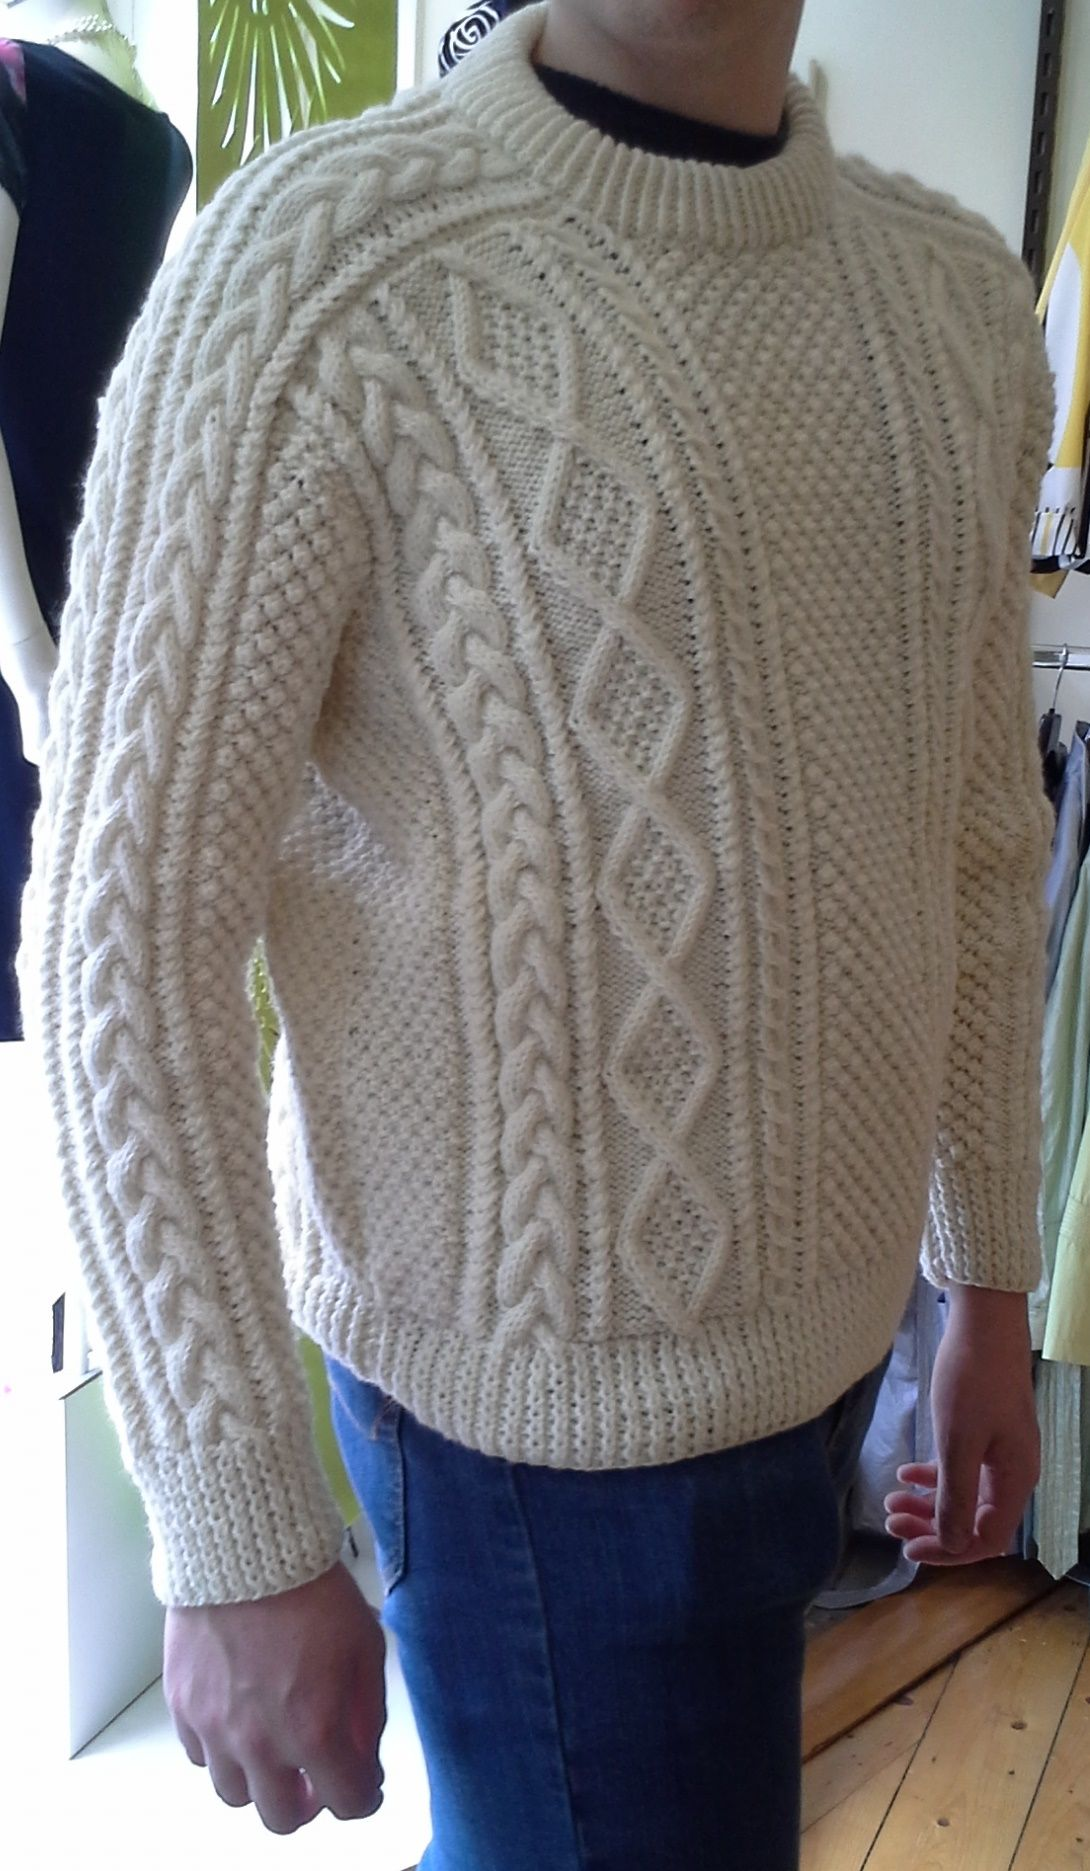 Handknit in 100% pure new wool in Co. Donegal, this sweater